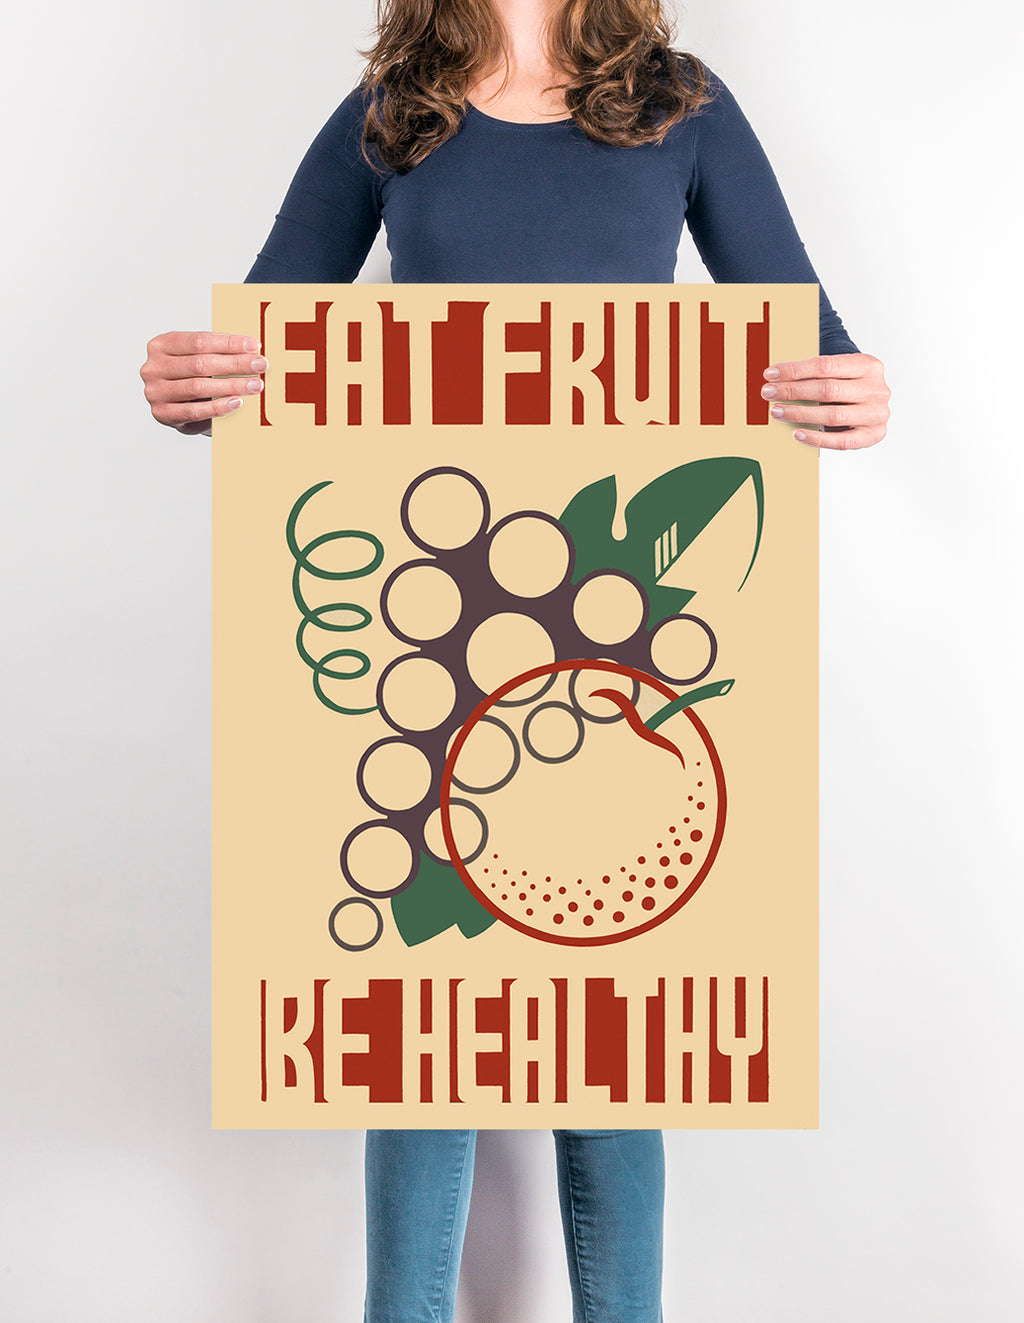 Eat Fruit Be Healthy - Kuriosis Vintage Prints